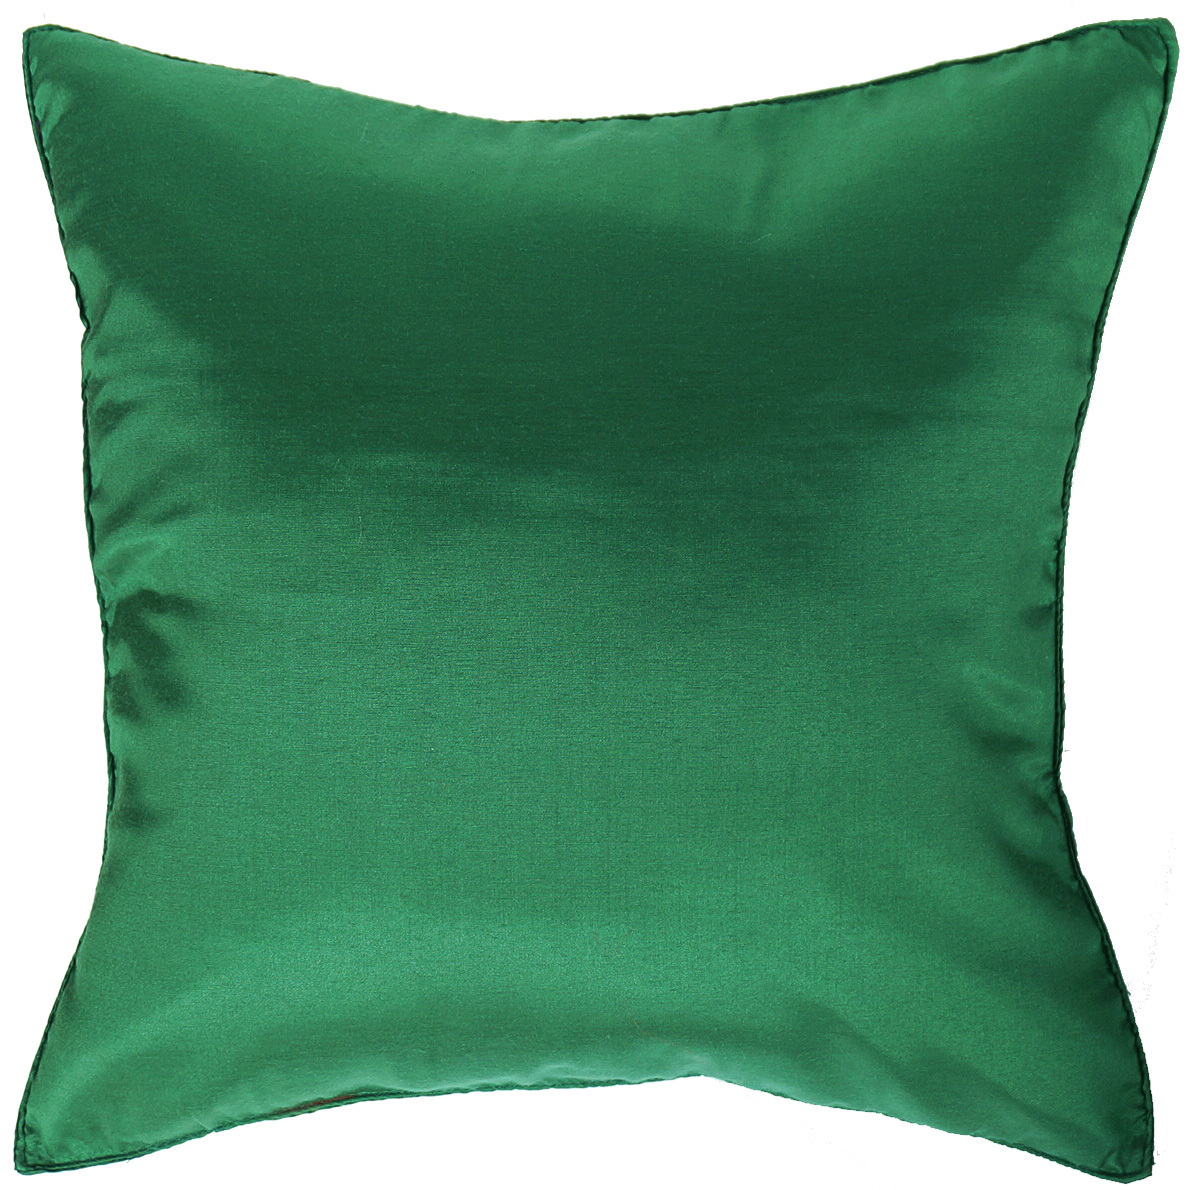 Throw Pillows With Covers : 1x SILK LARGE DECORATIVE THROW PILLOW COVER FOR COUCH SOFA BED SOLID COLOR 20x20 - Pillows